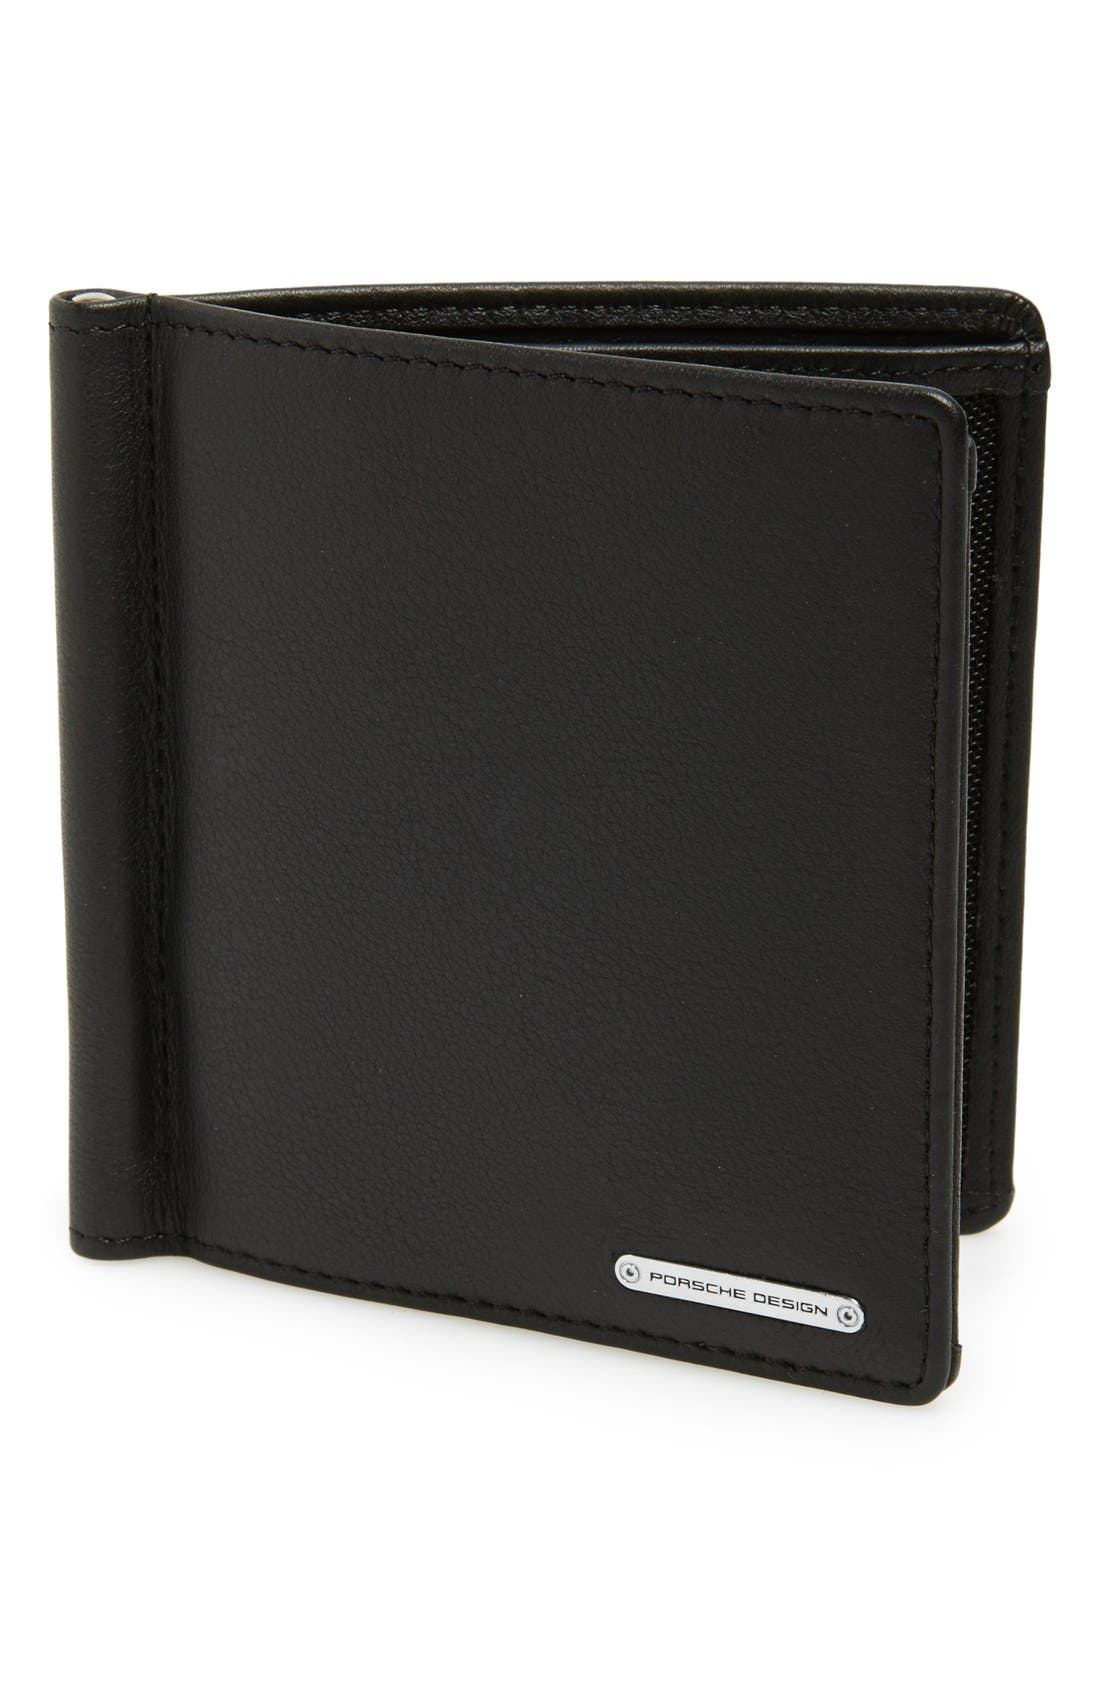 Porsche Design 'CL2 2.0' Money Clip Card Holder